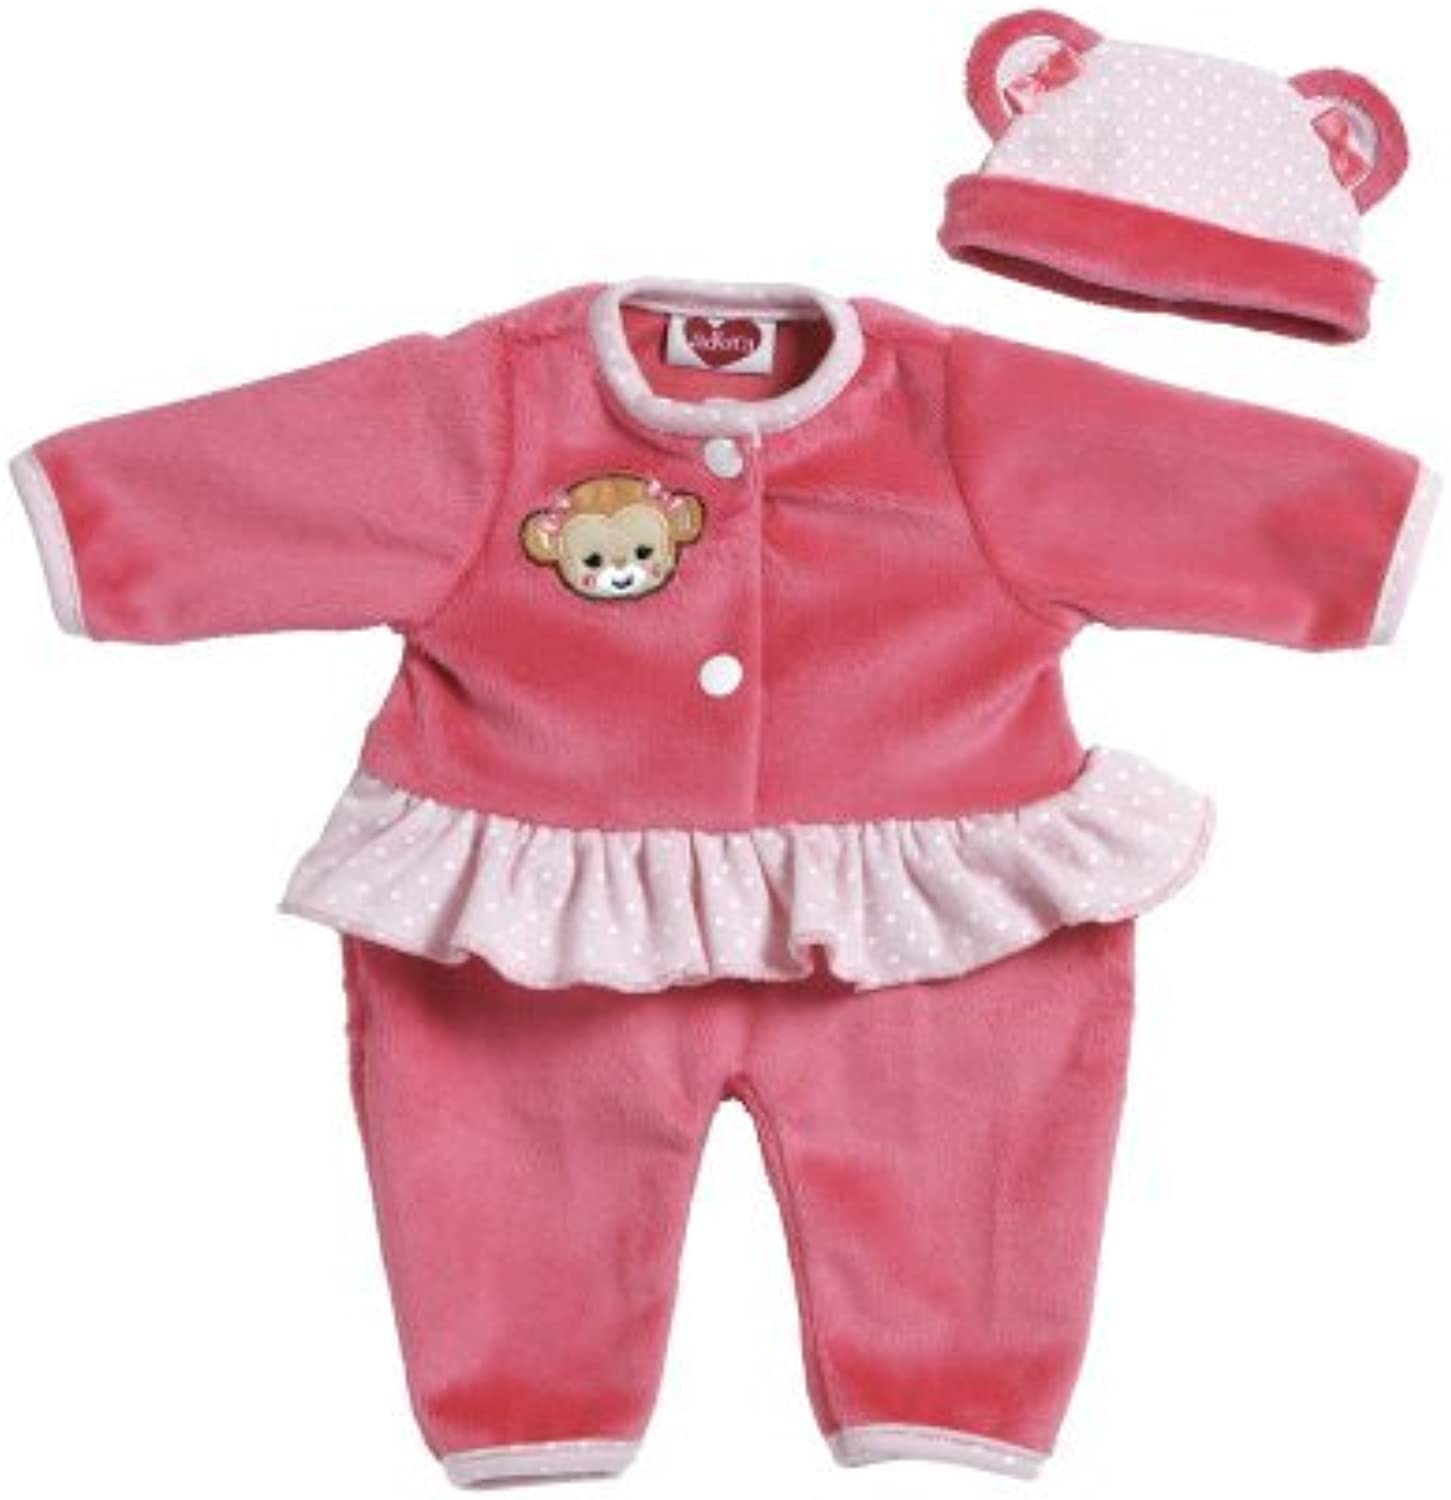 Adora Giggle Time Baby Doll Pink Monkey Outfit by Adora